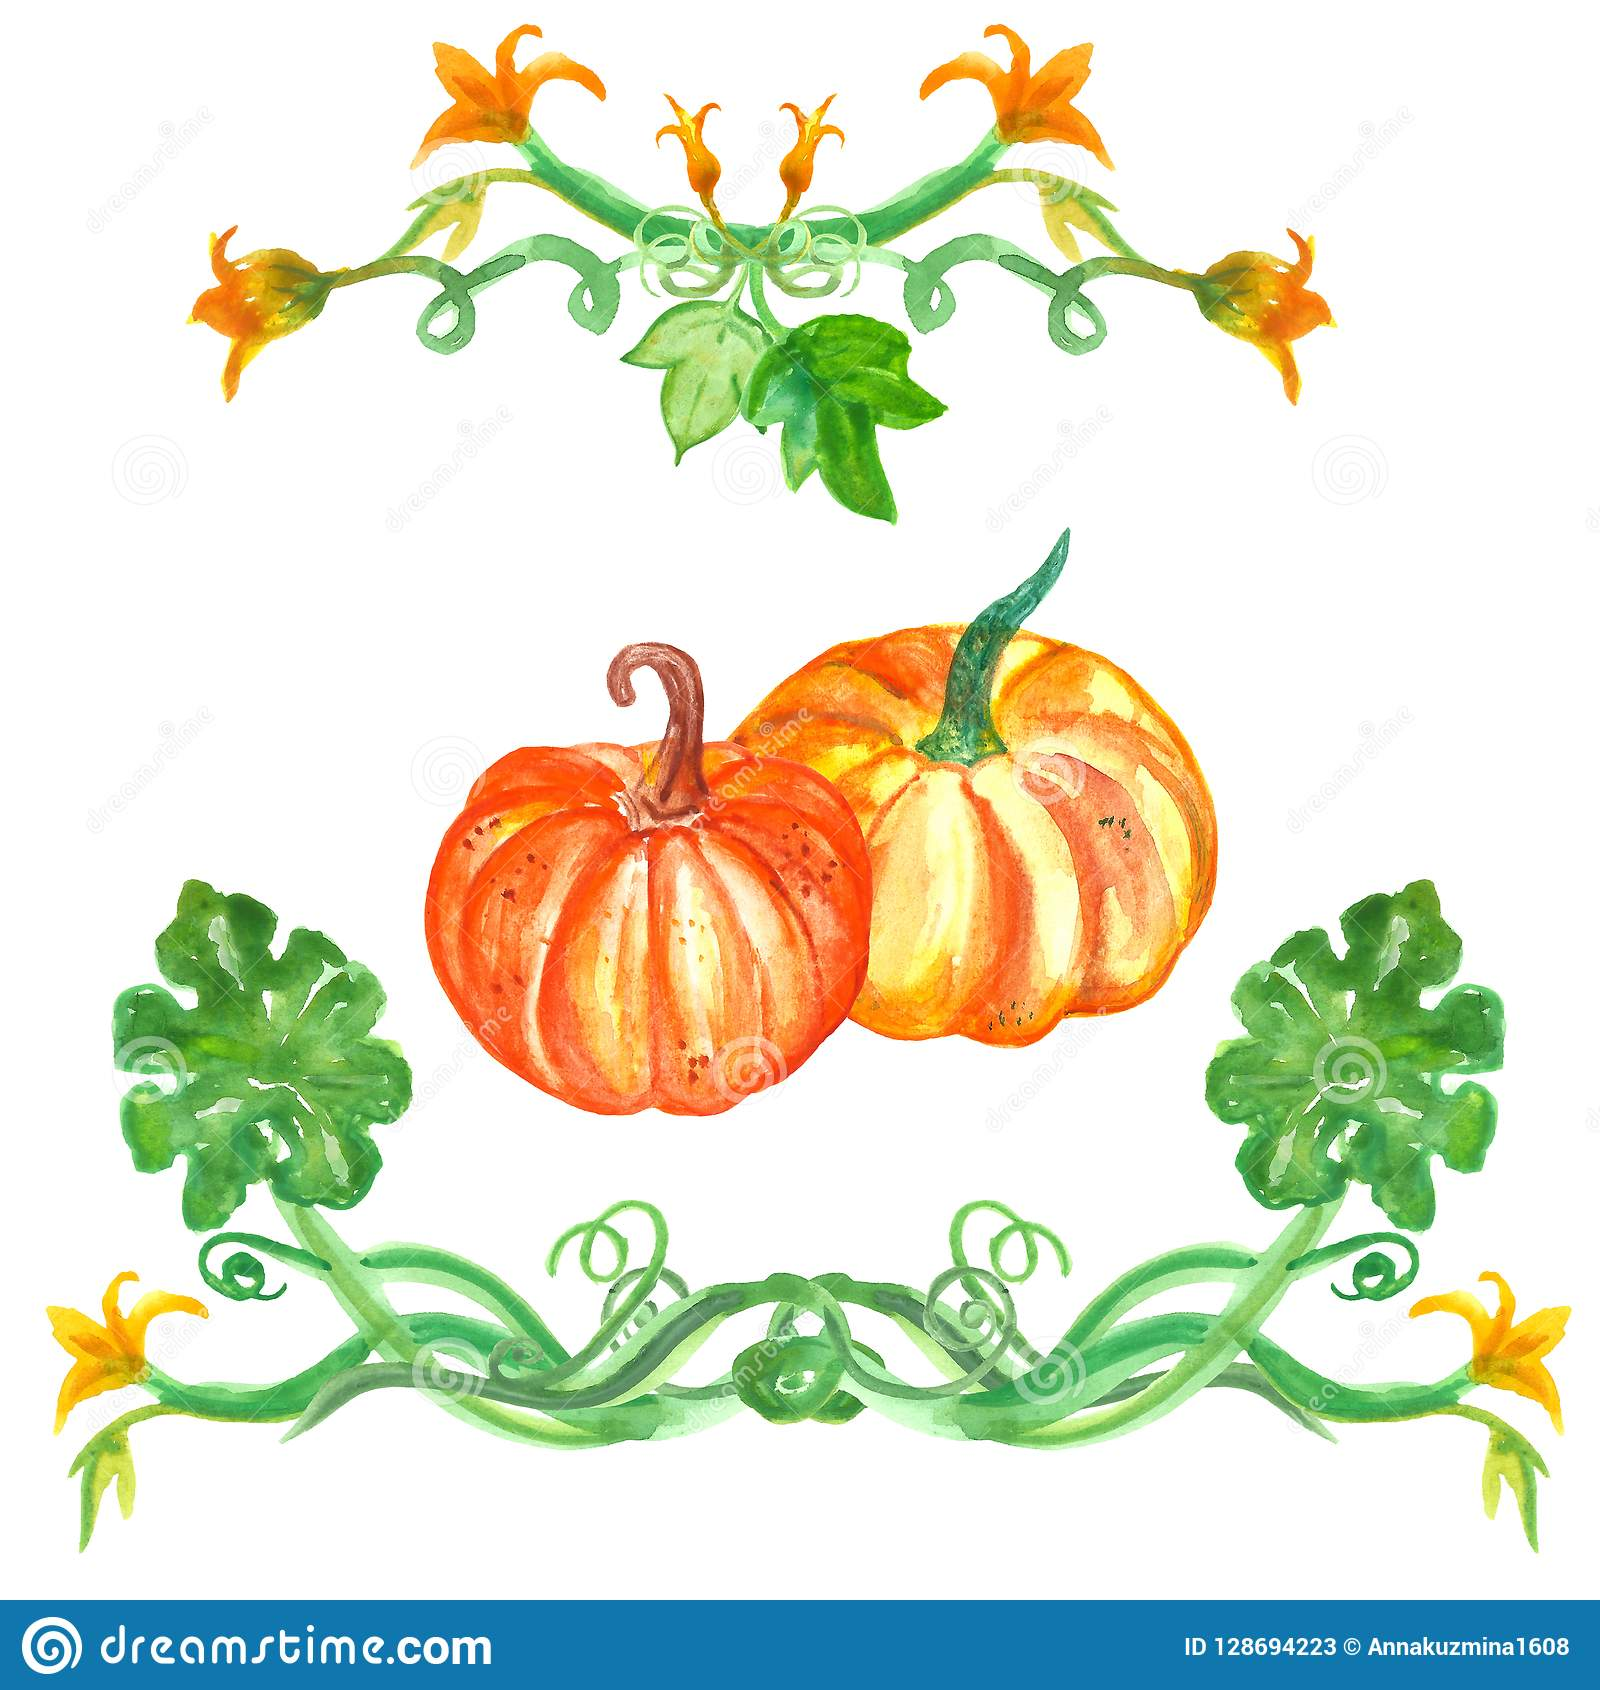 Watercolor Pumpkin Set With Leaves Autumn Hand Drawn